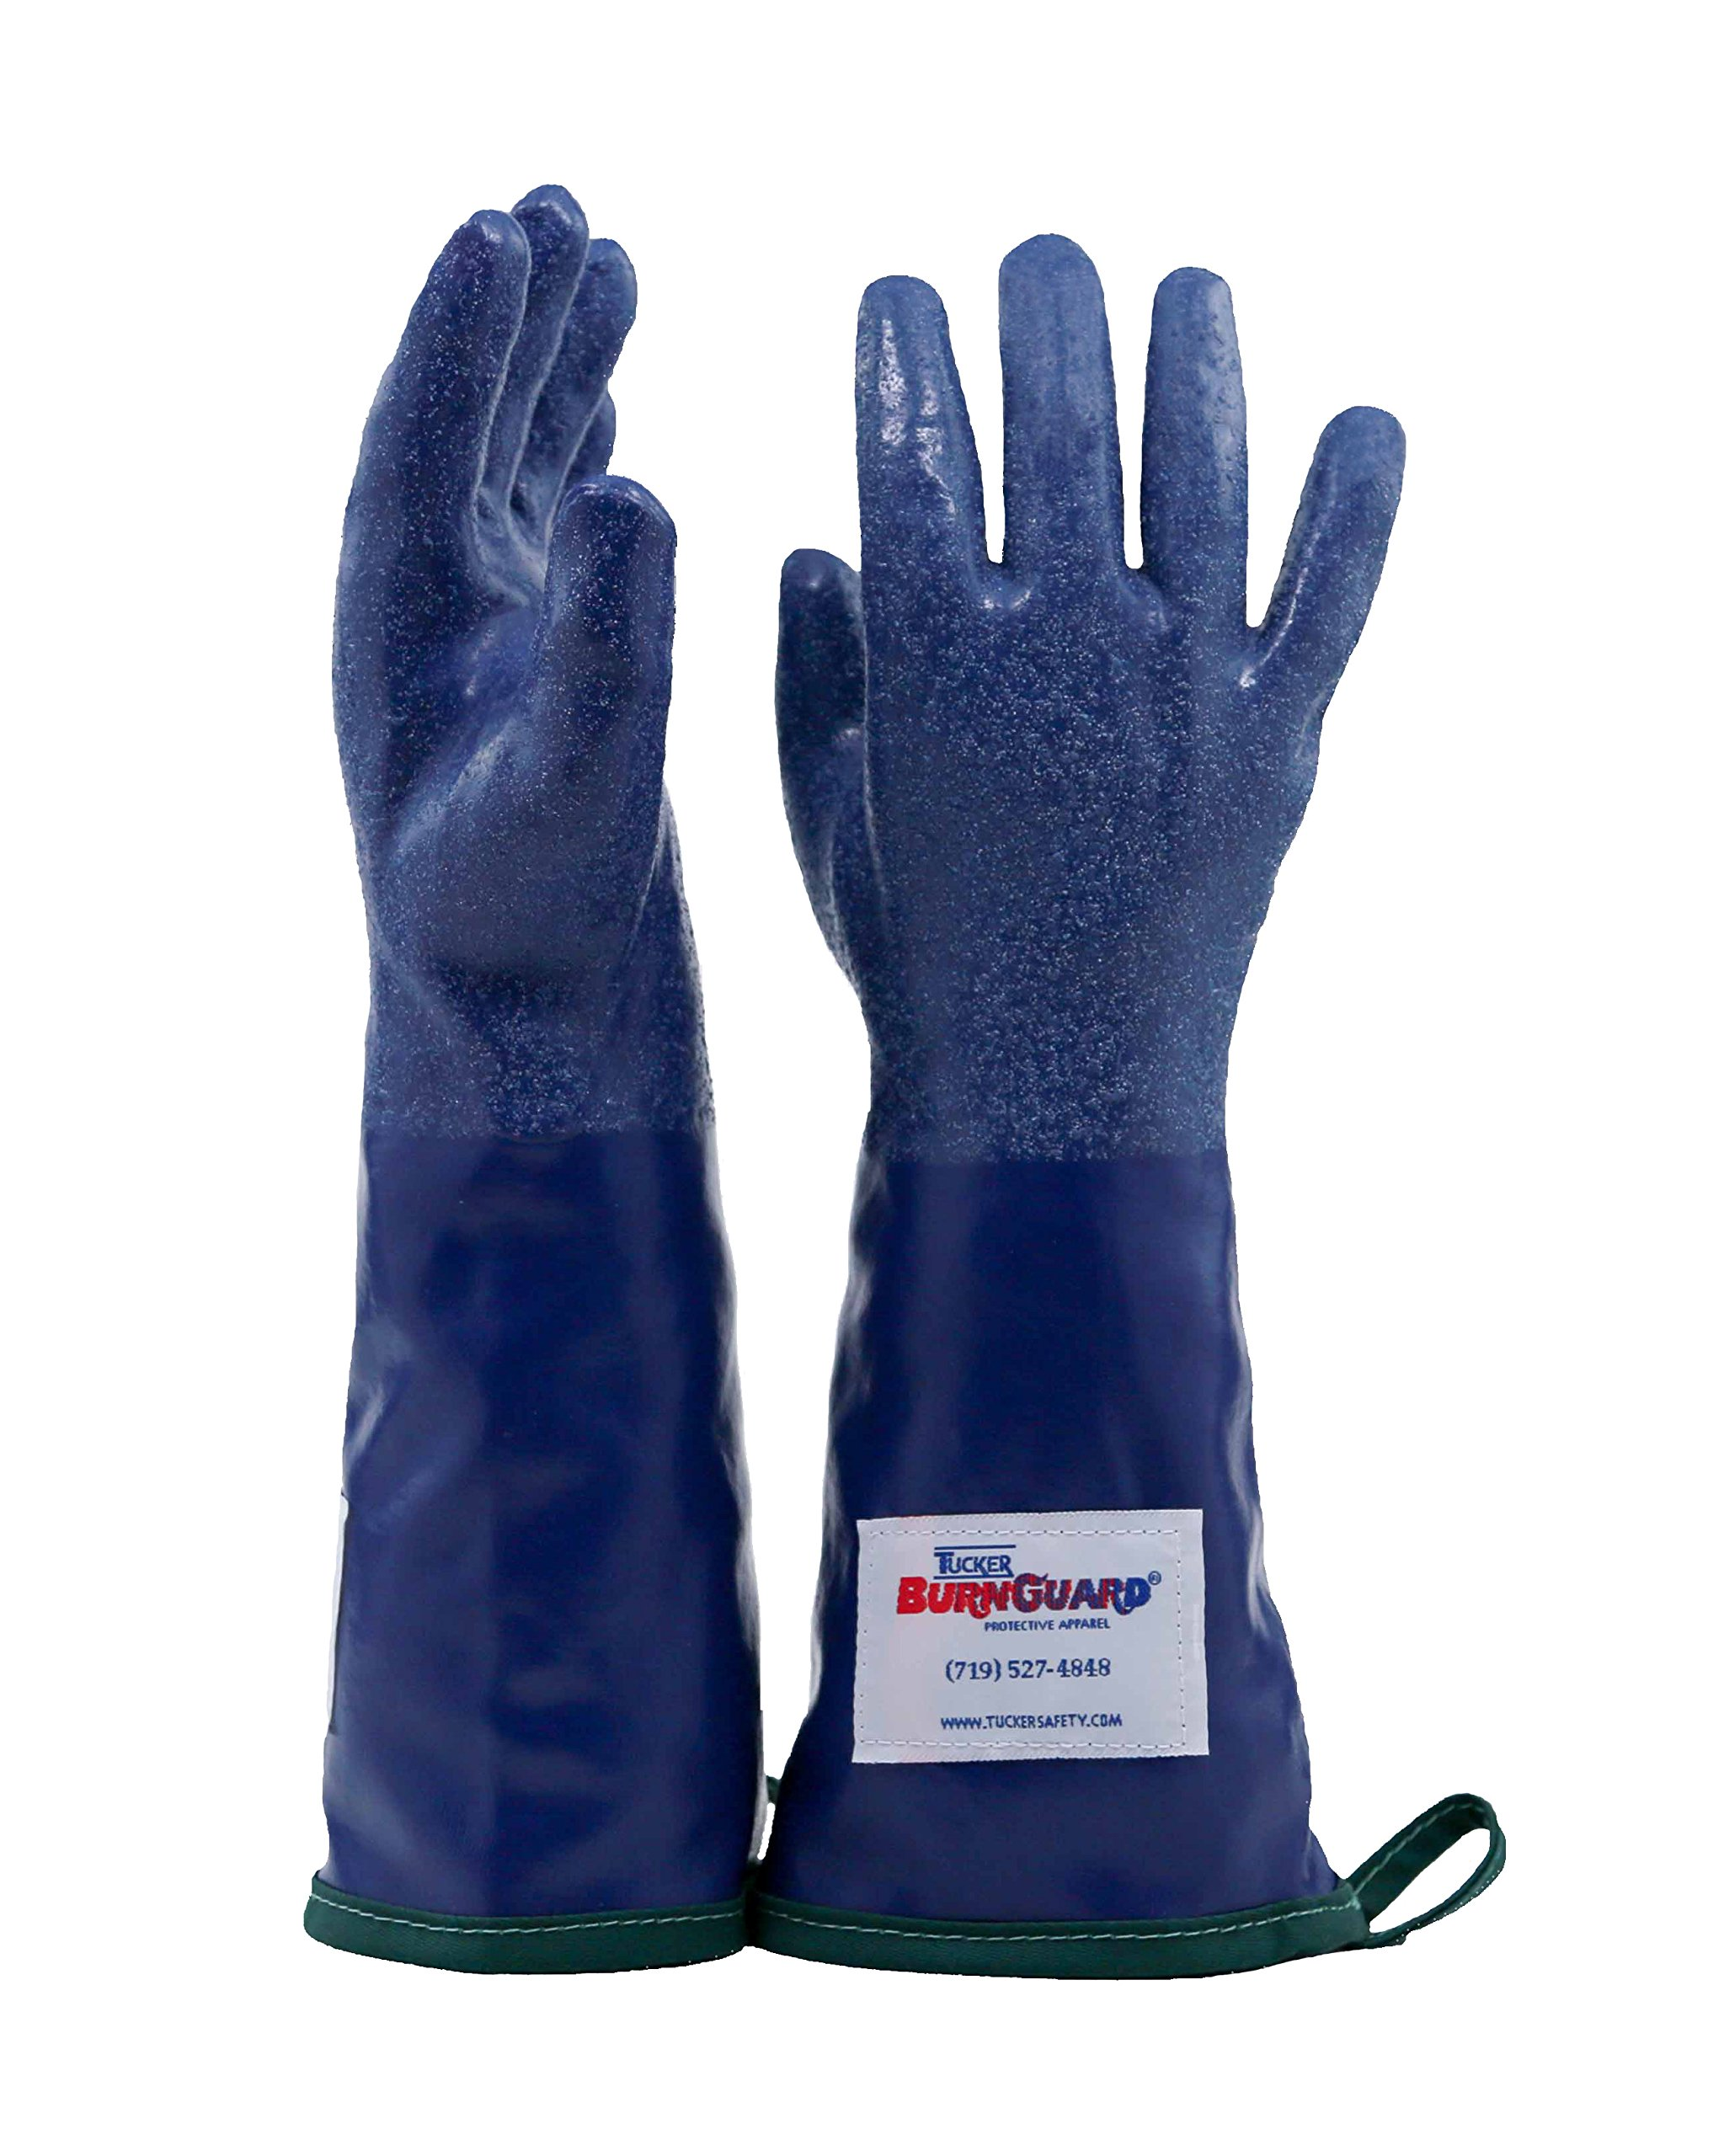 Tucker Safety 92144 Products  Tucker SteamGlove Utility Glove, Nitrile, Cotton Lined, 14'', Large, Blue